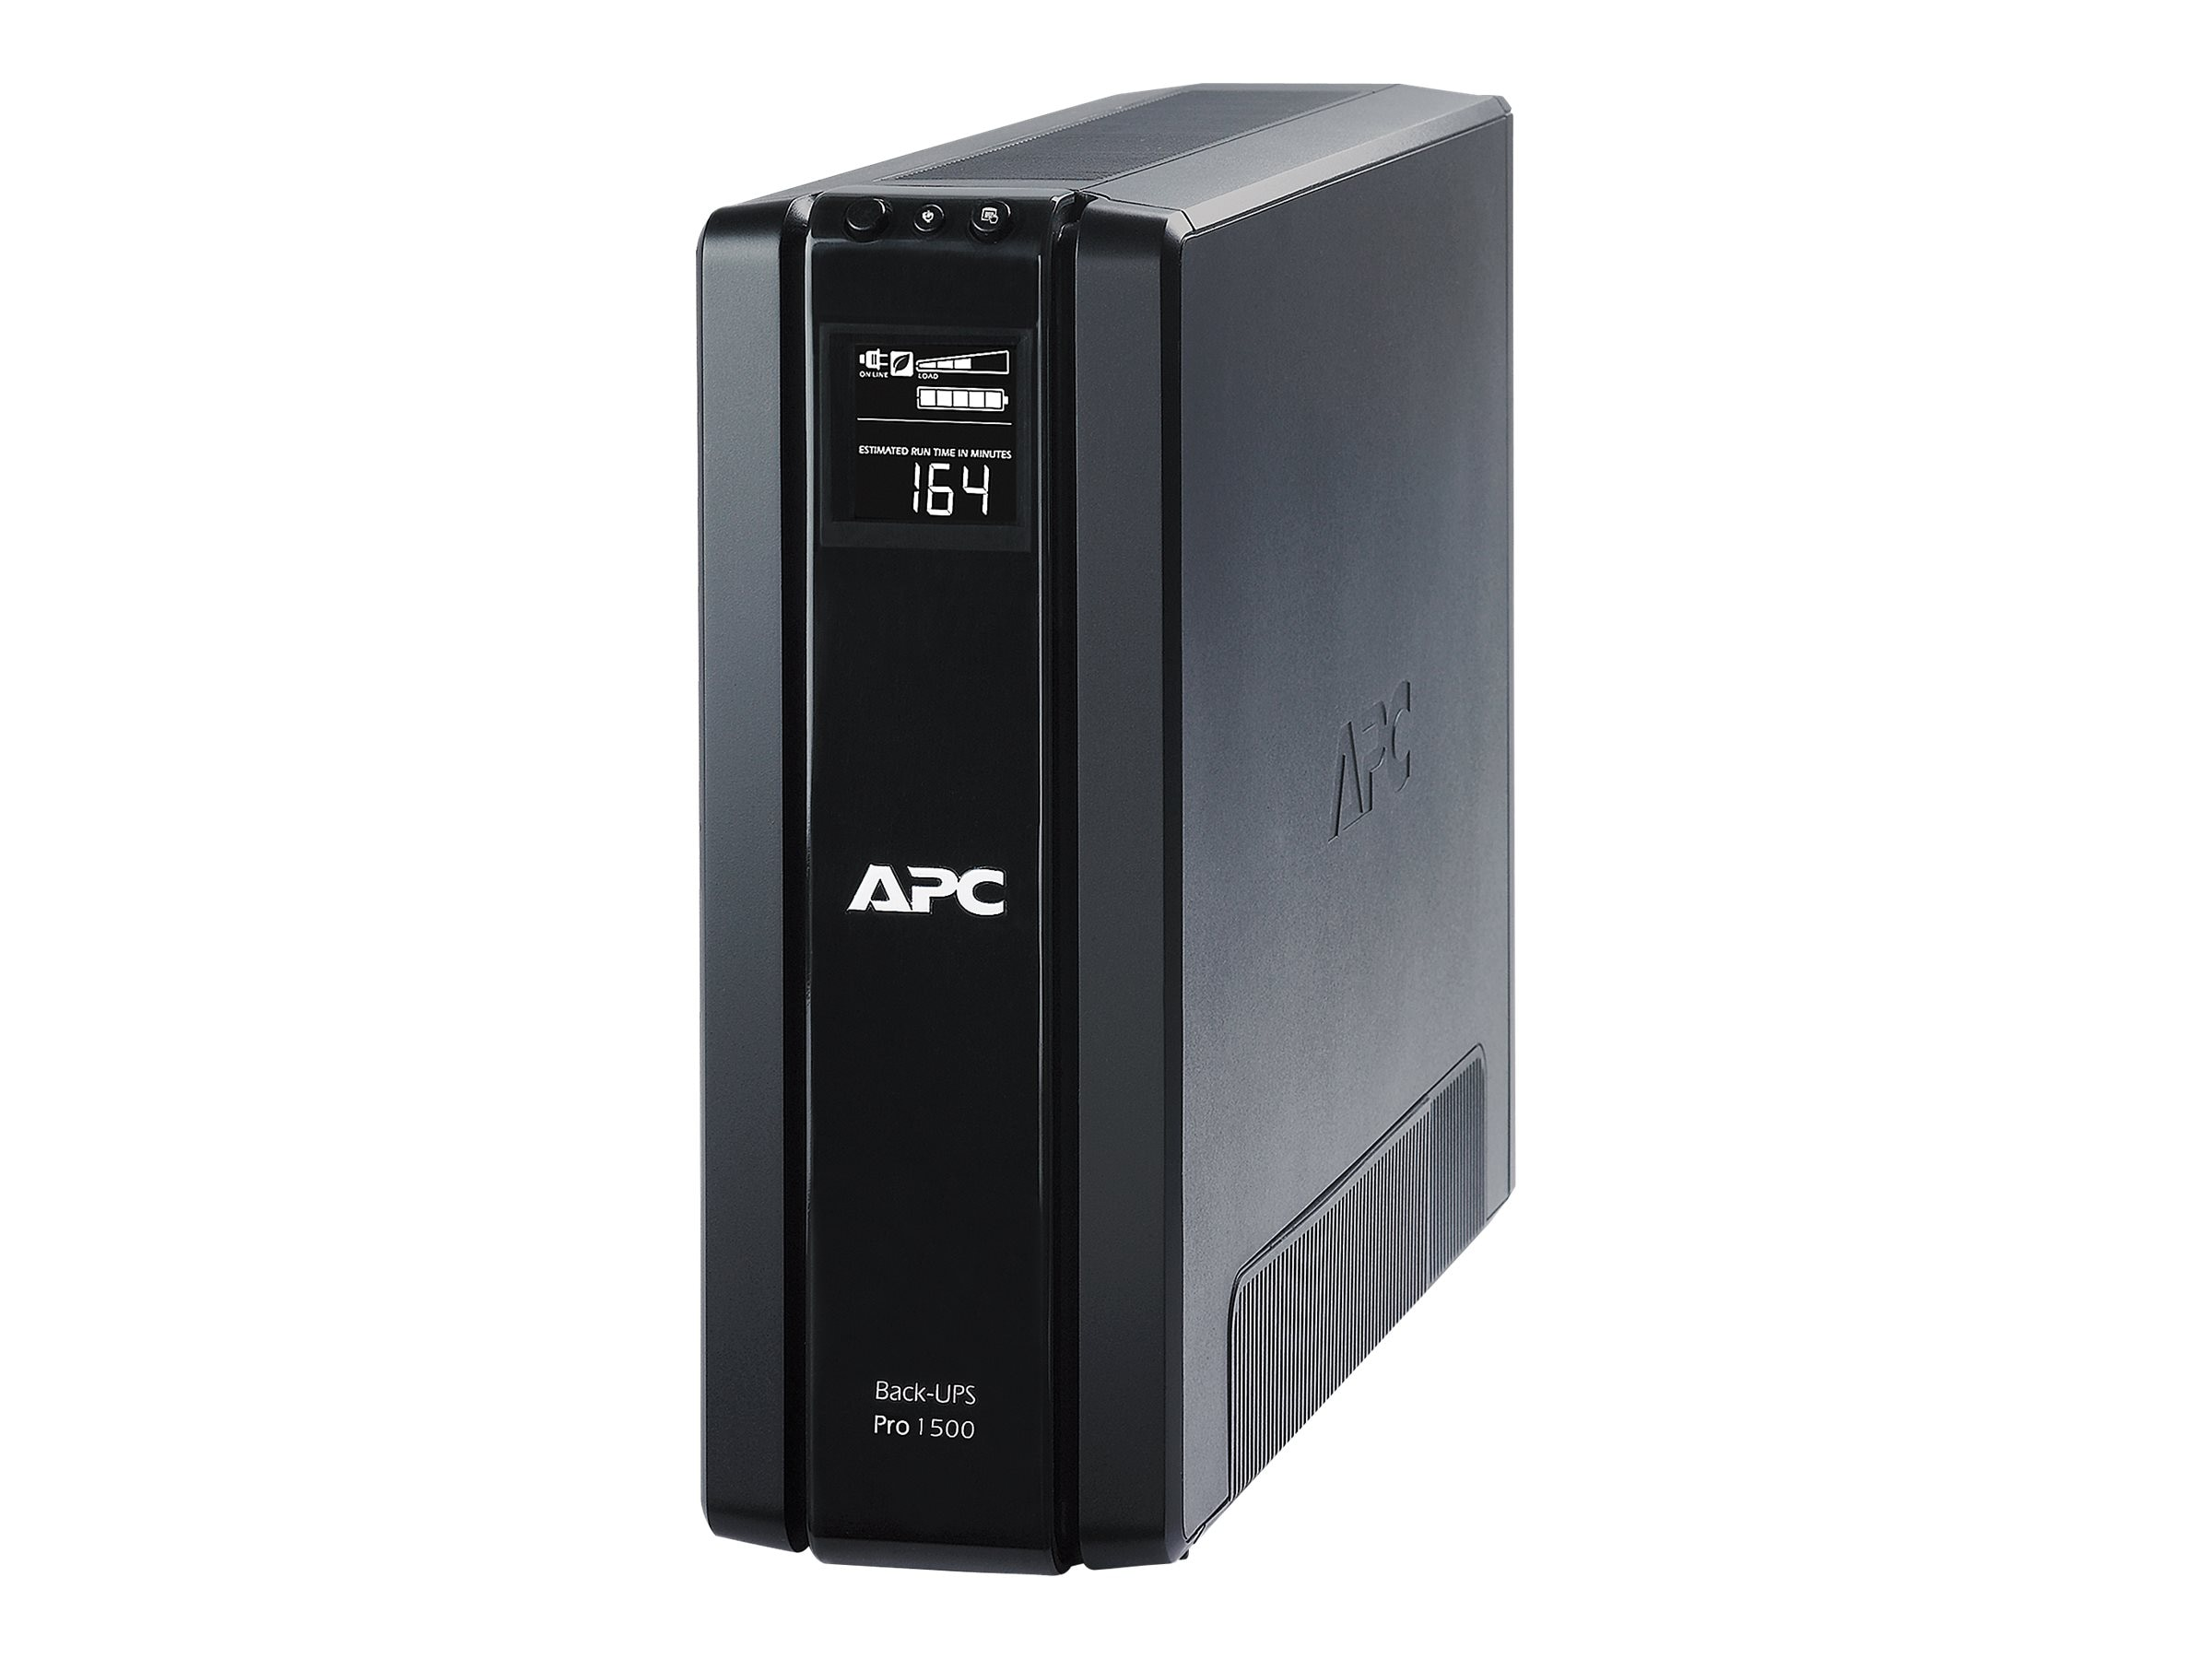 APC Power-Saving Back-UPS Pro 1500VA 865W 5-15P Input